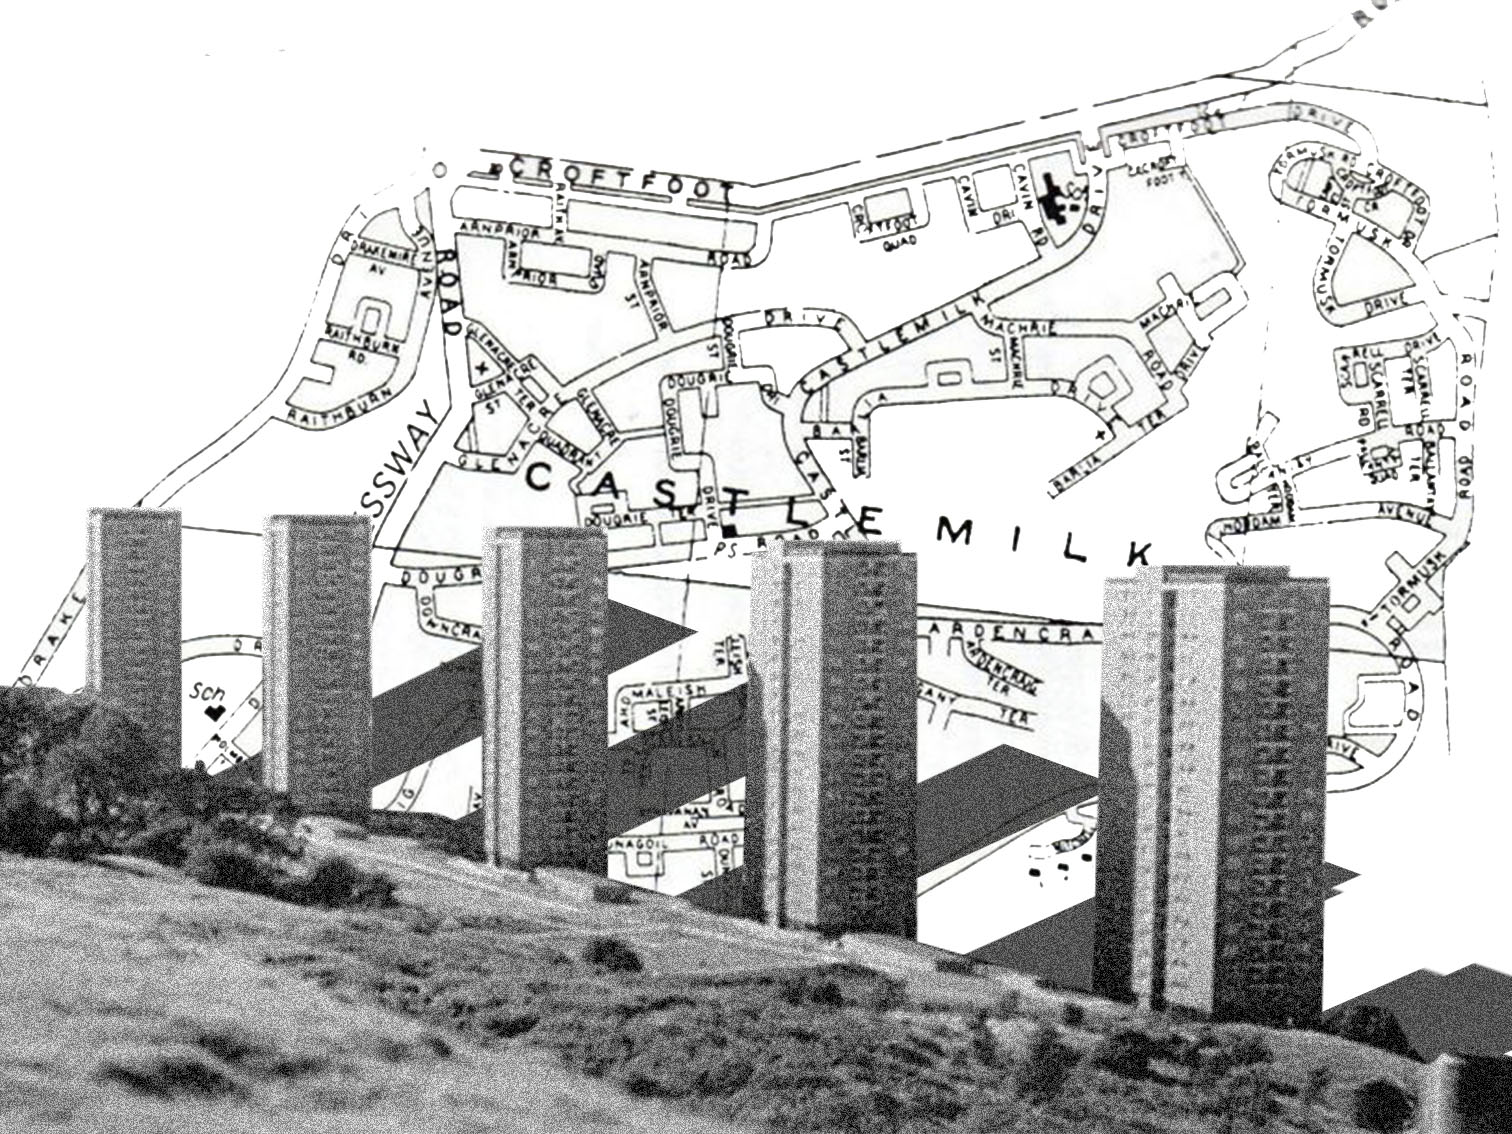 The Plan of a City